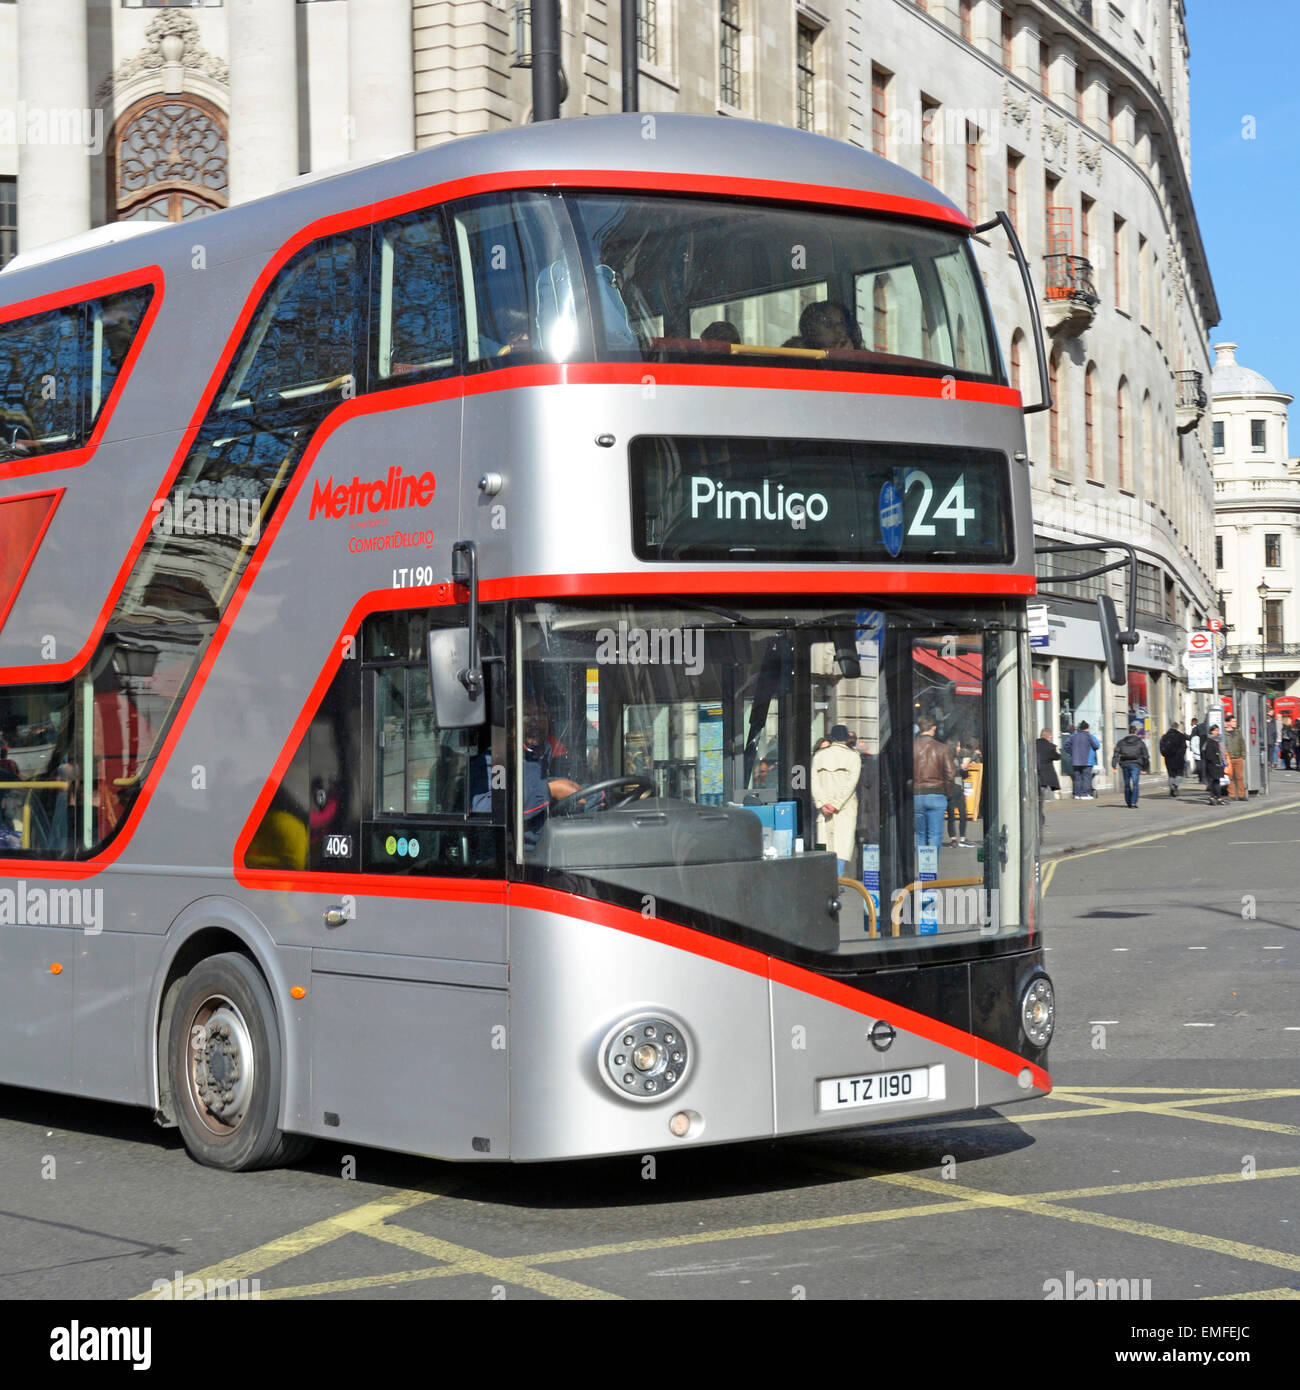 Silver edition of new London Routemaster Boris bus operated by Metroline on route 24 running to Pimlico London England - Stock Image